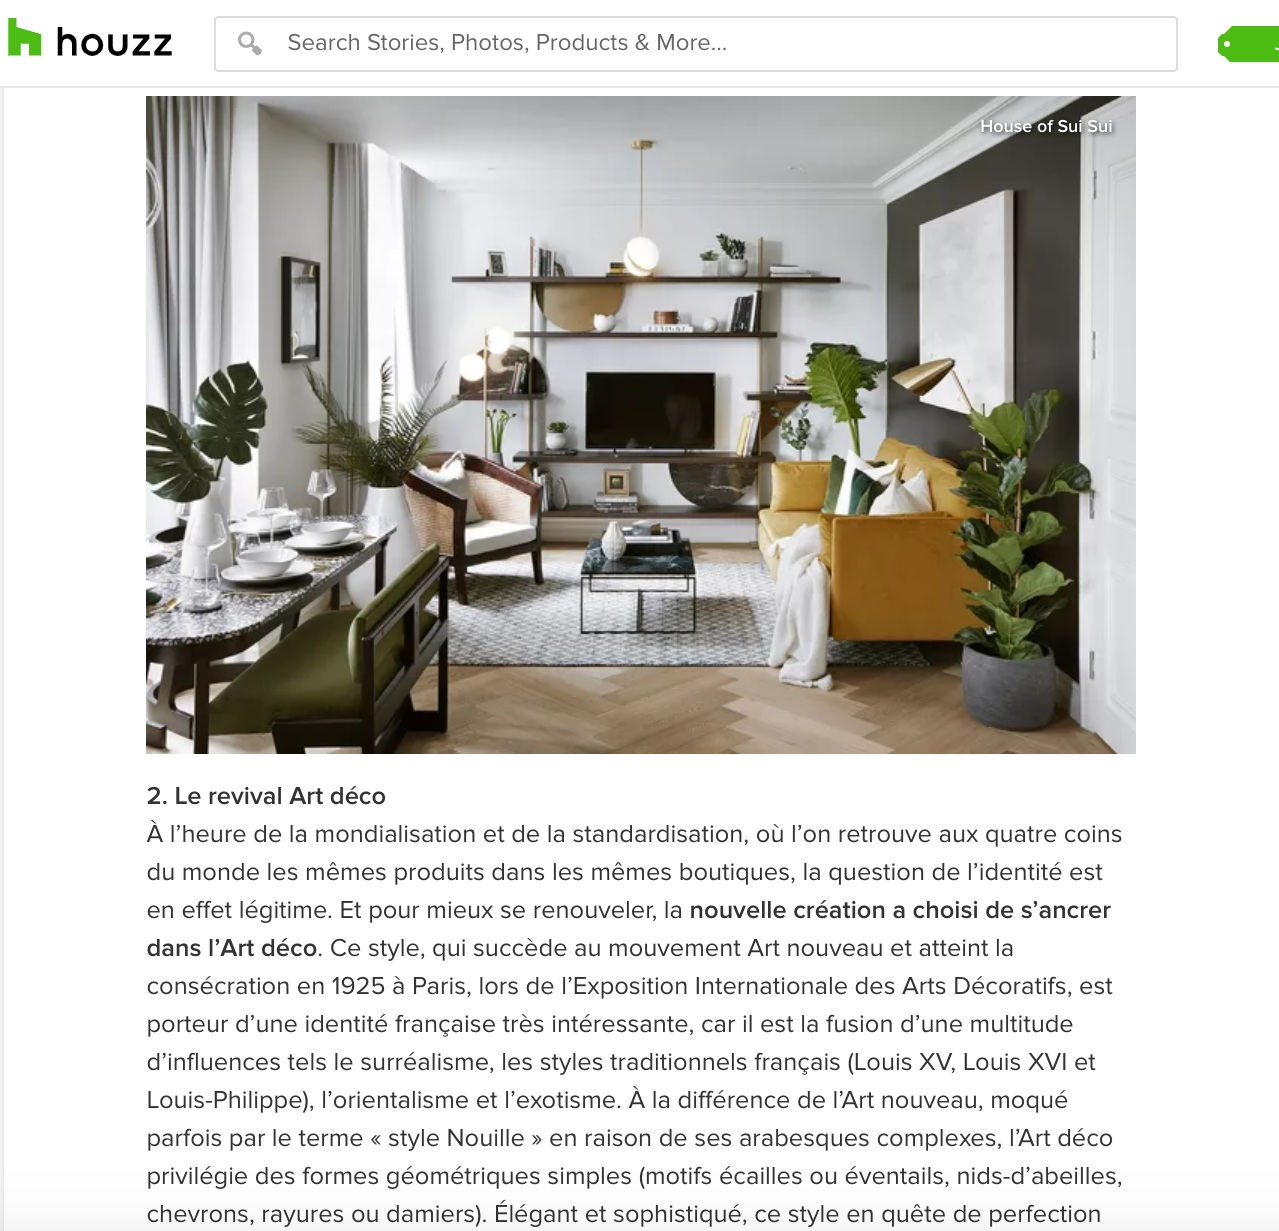 HOUZZ - HOUSE OF SUI SUI Maison & Objet Trends the 2019 Edition Tendances Melissa Bolivar 5